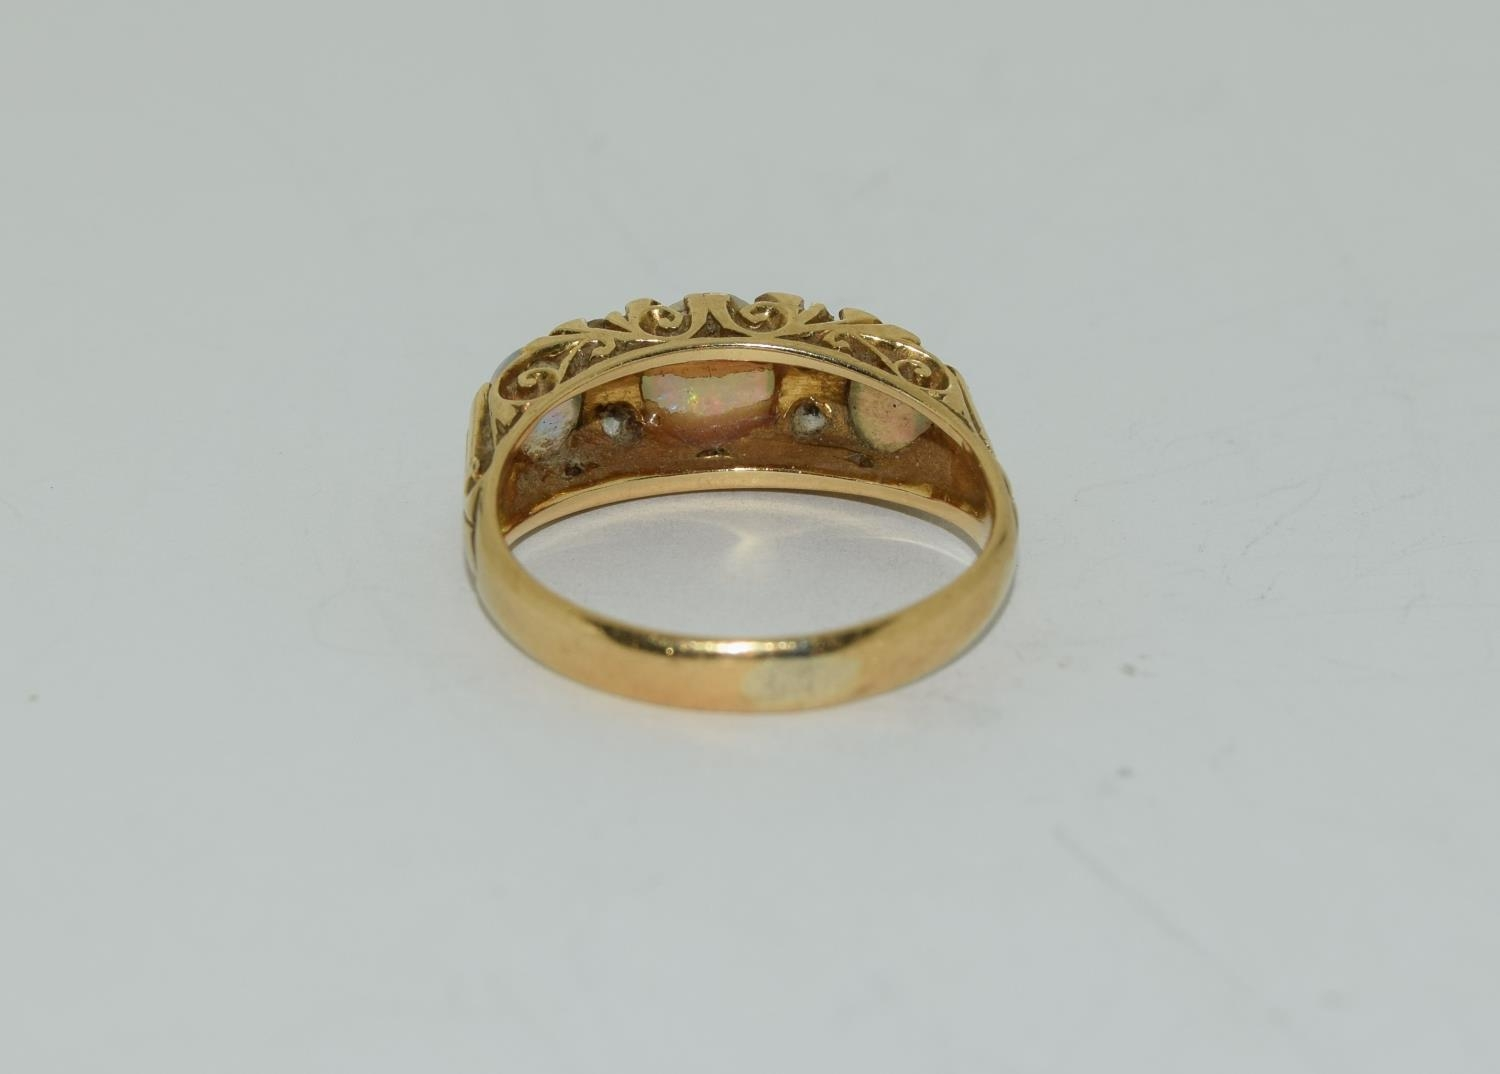 18ct gold ladies 3 stone opal and diamond ring size M - Image 3 of 5